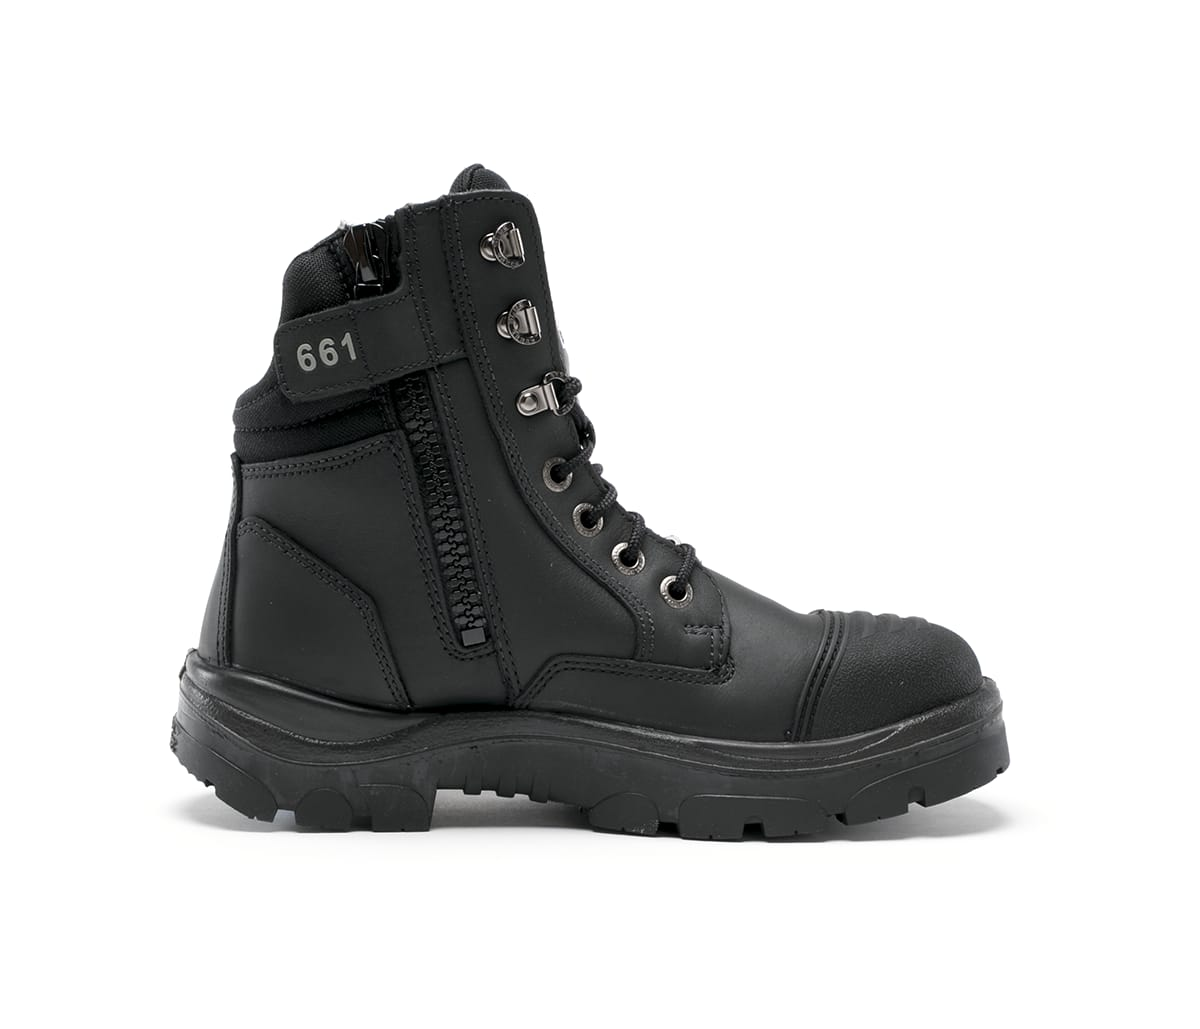 Southern Cross Zip - Black